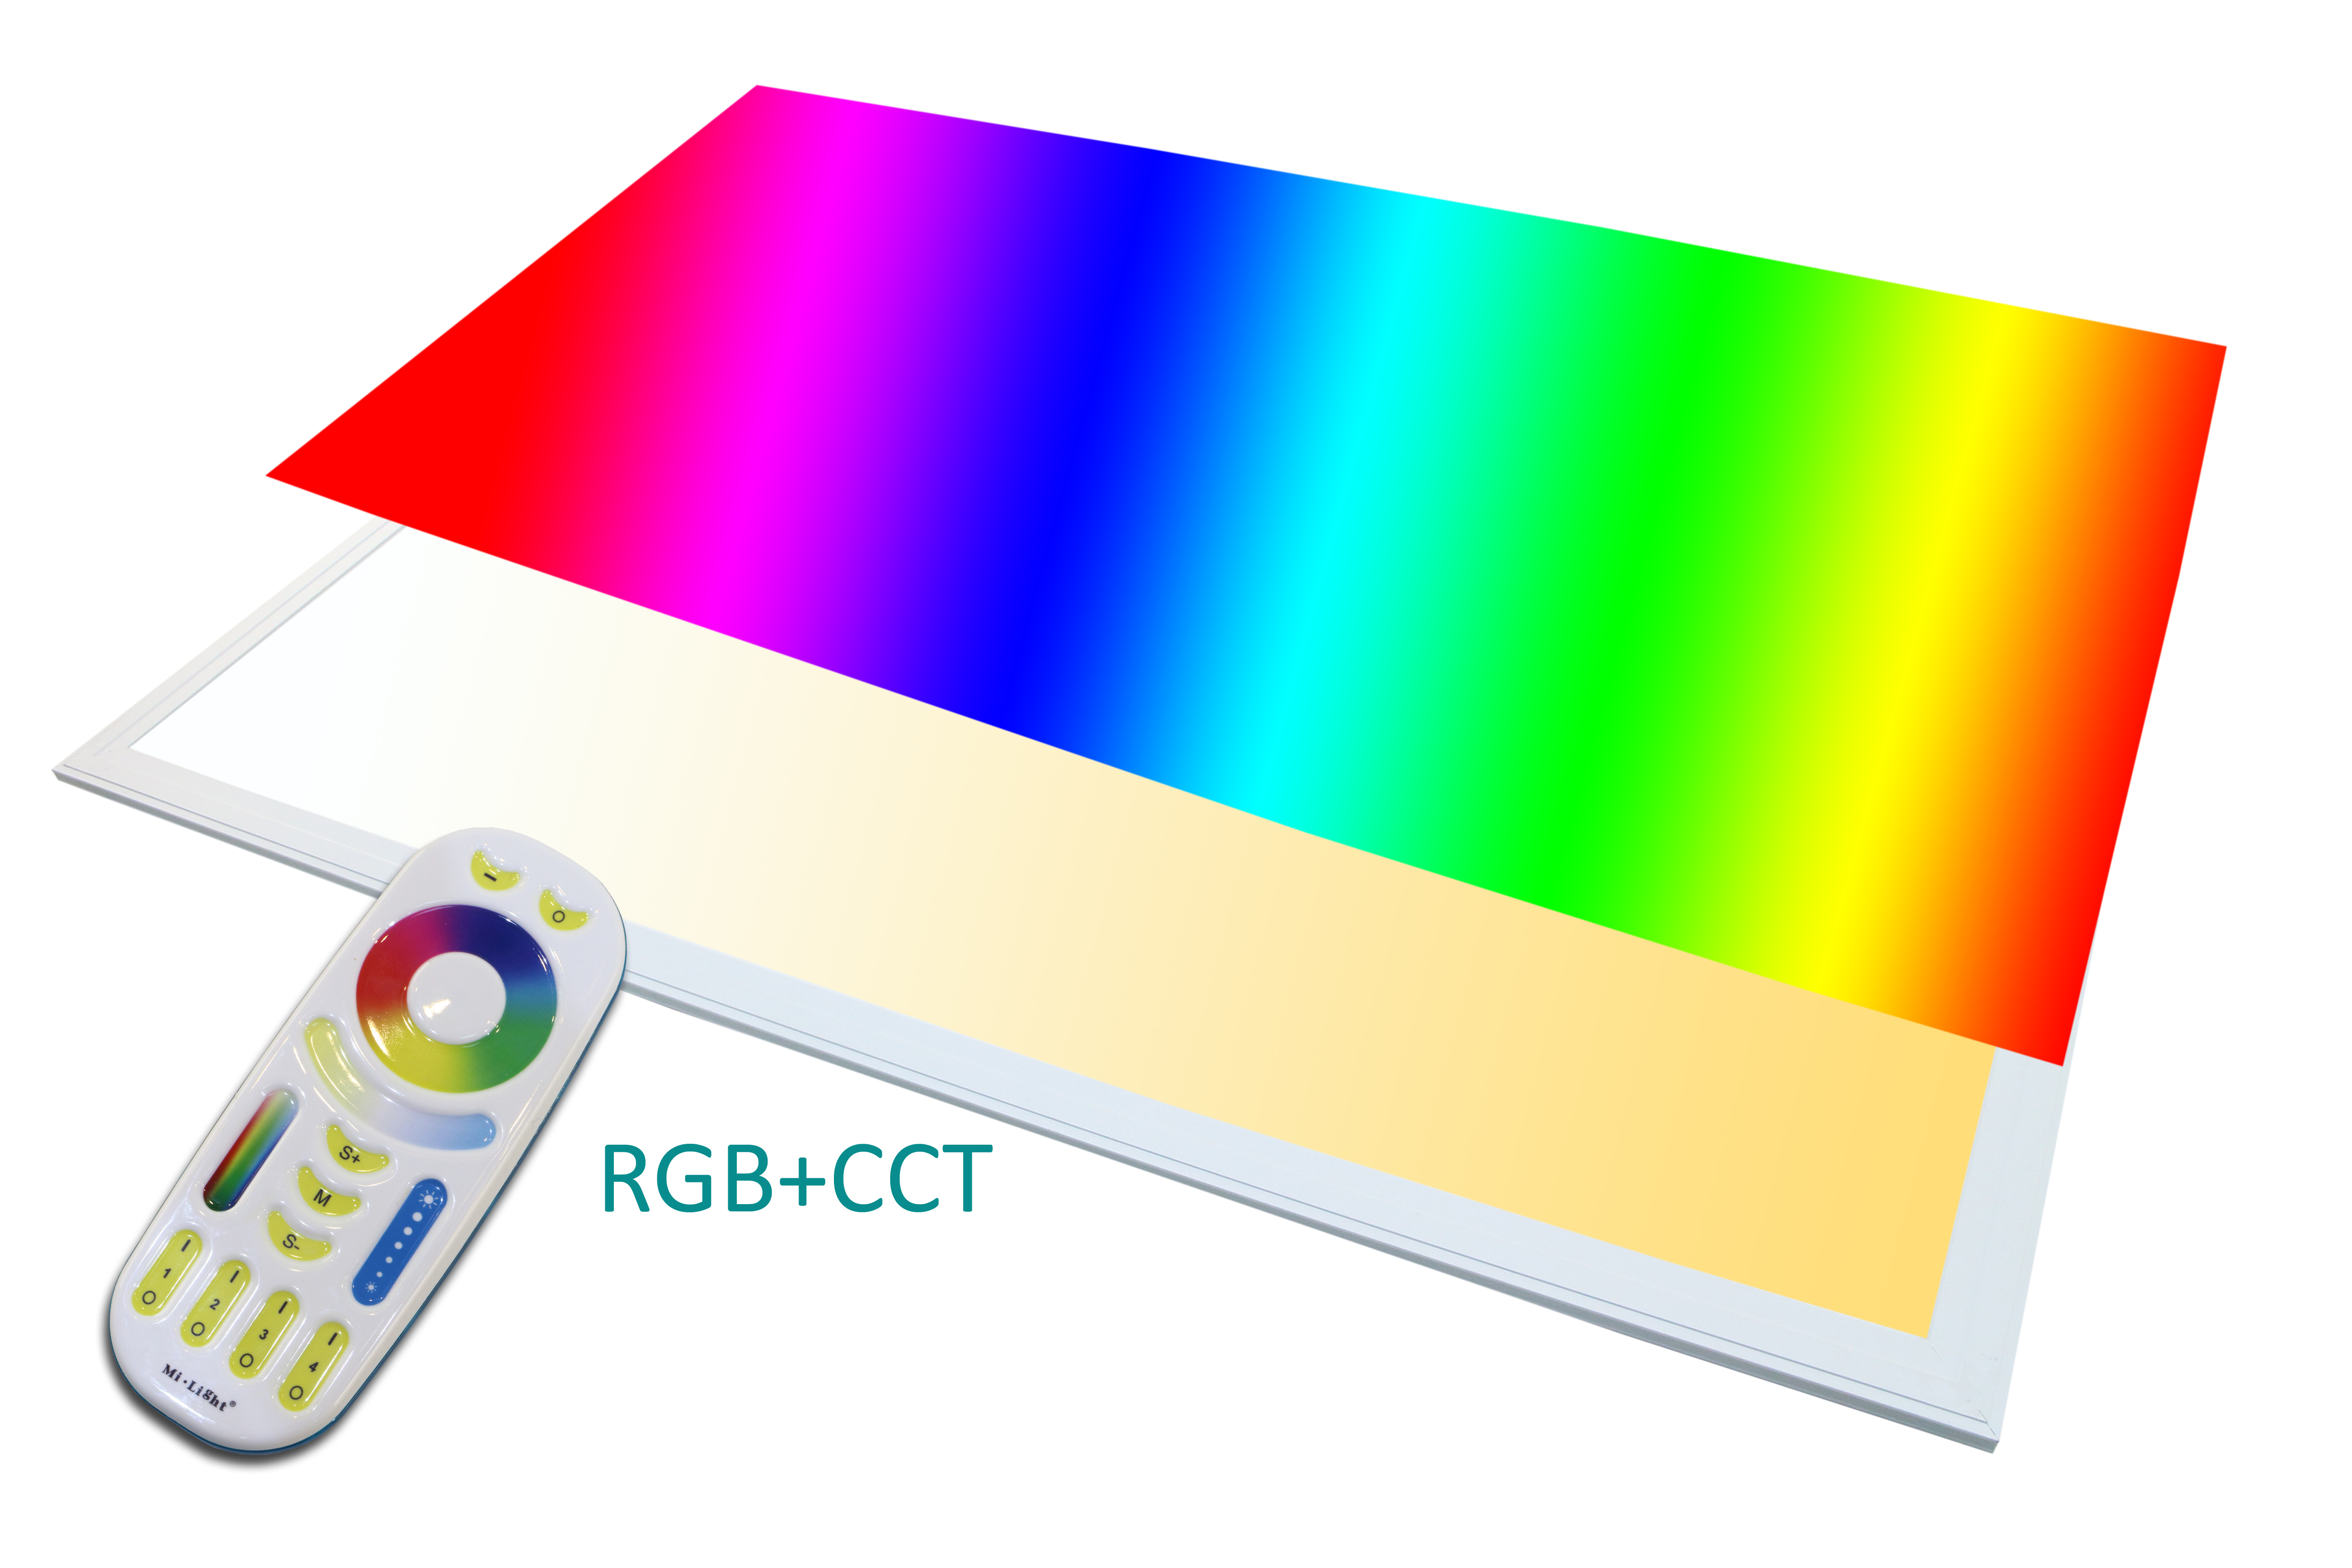 Led Panel Mit Fernbedienung Txl24 Led Panel Rgb 120x60 Plus Ww Cw 60 Watt Dimmbar Und Alle